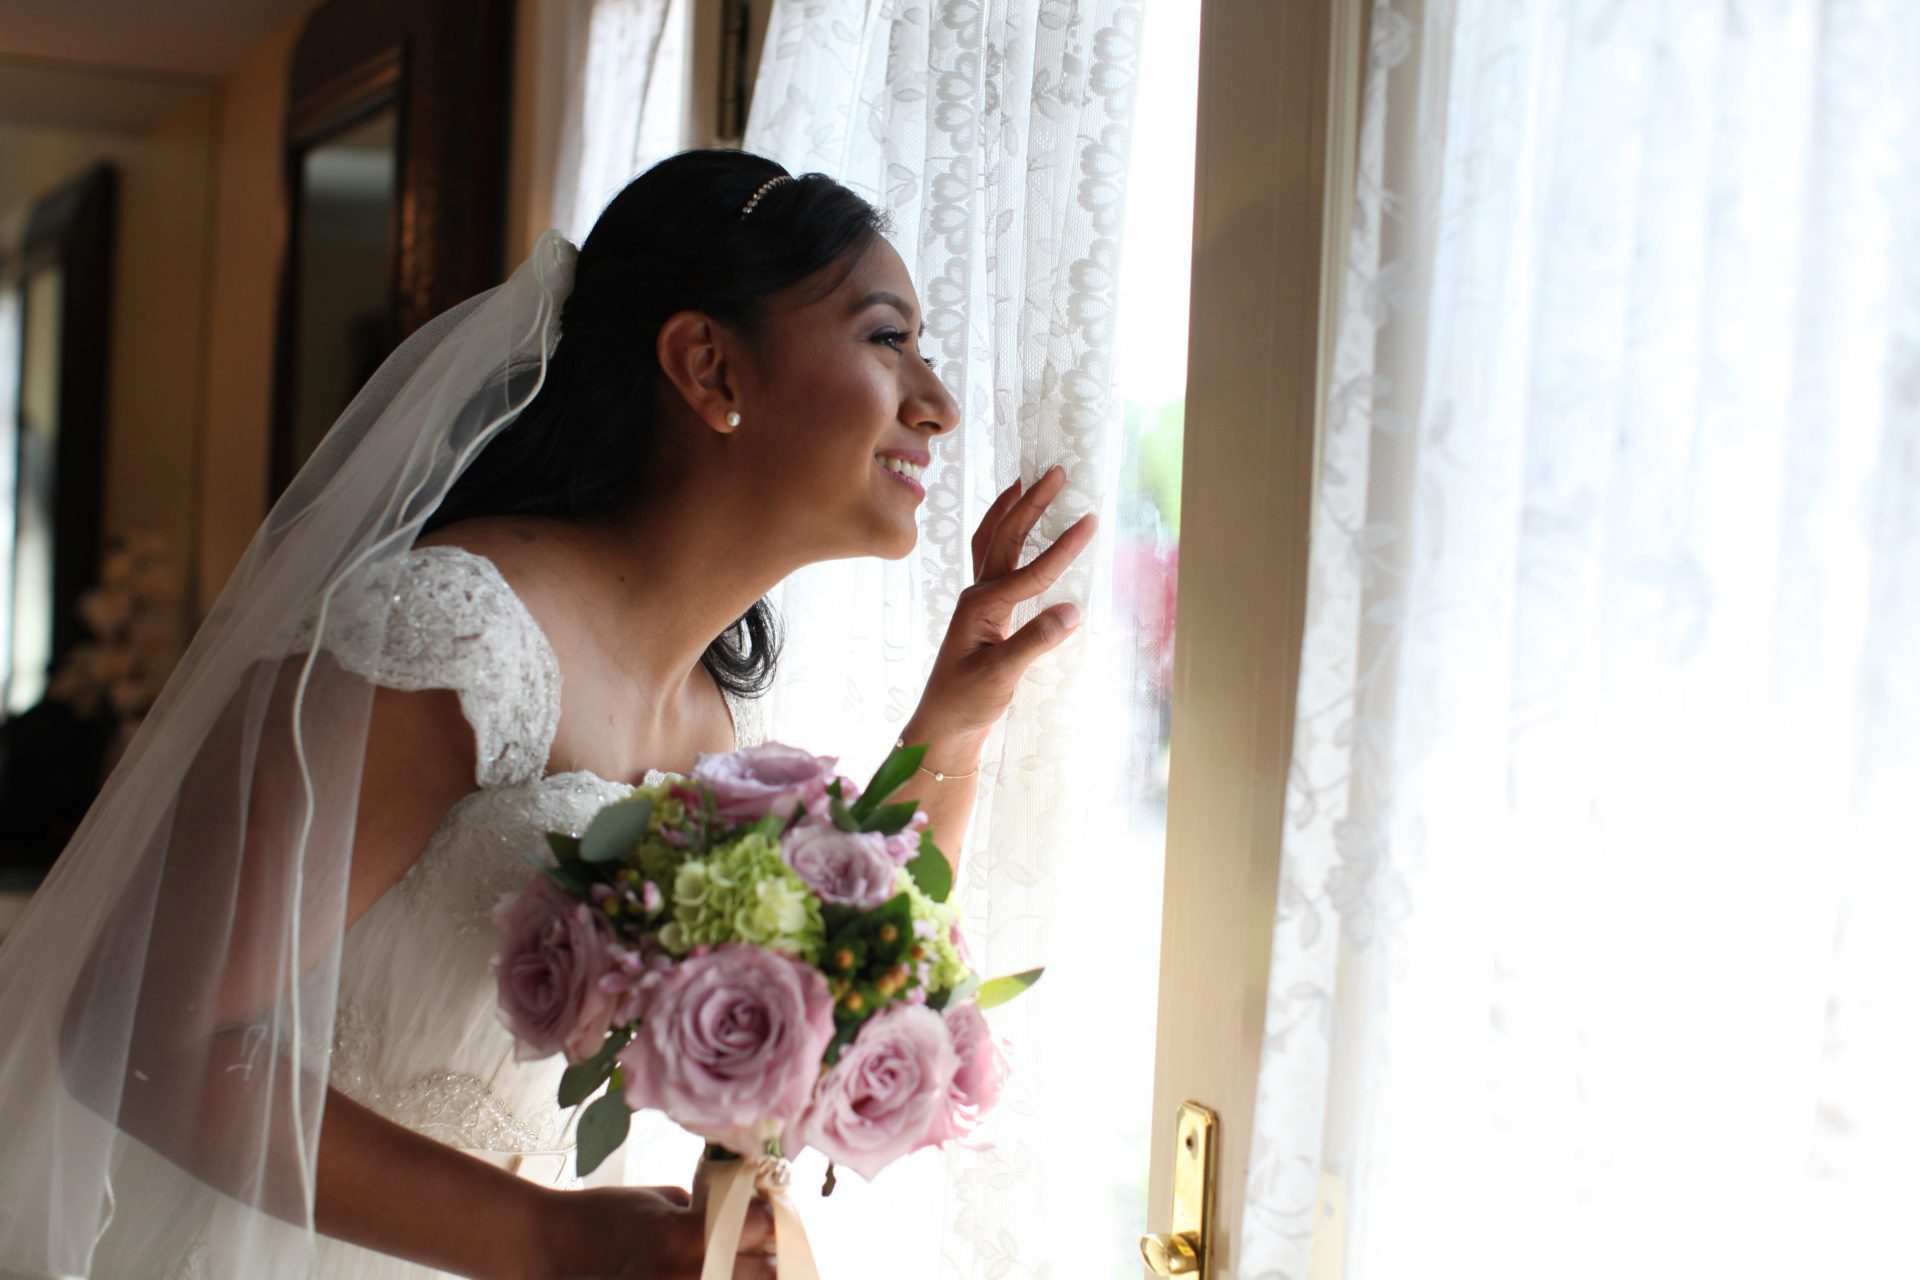 bride looks out window before outdoor wedding ceremony at Morningside Inn